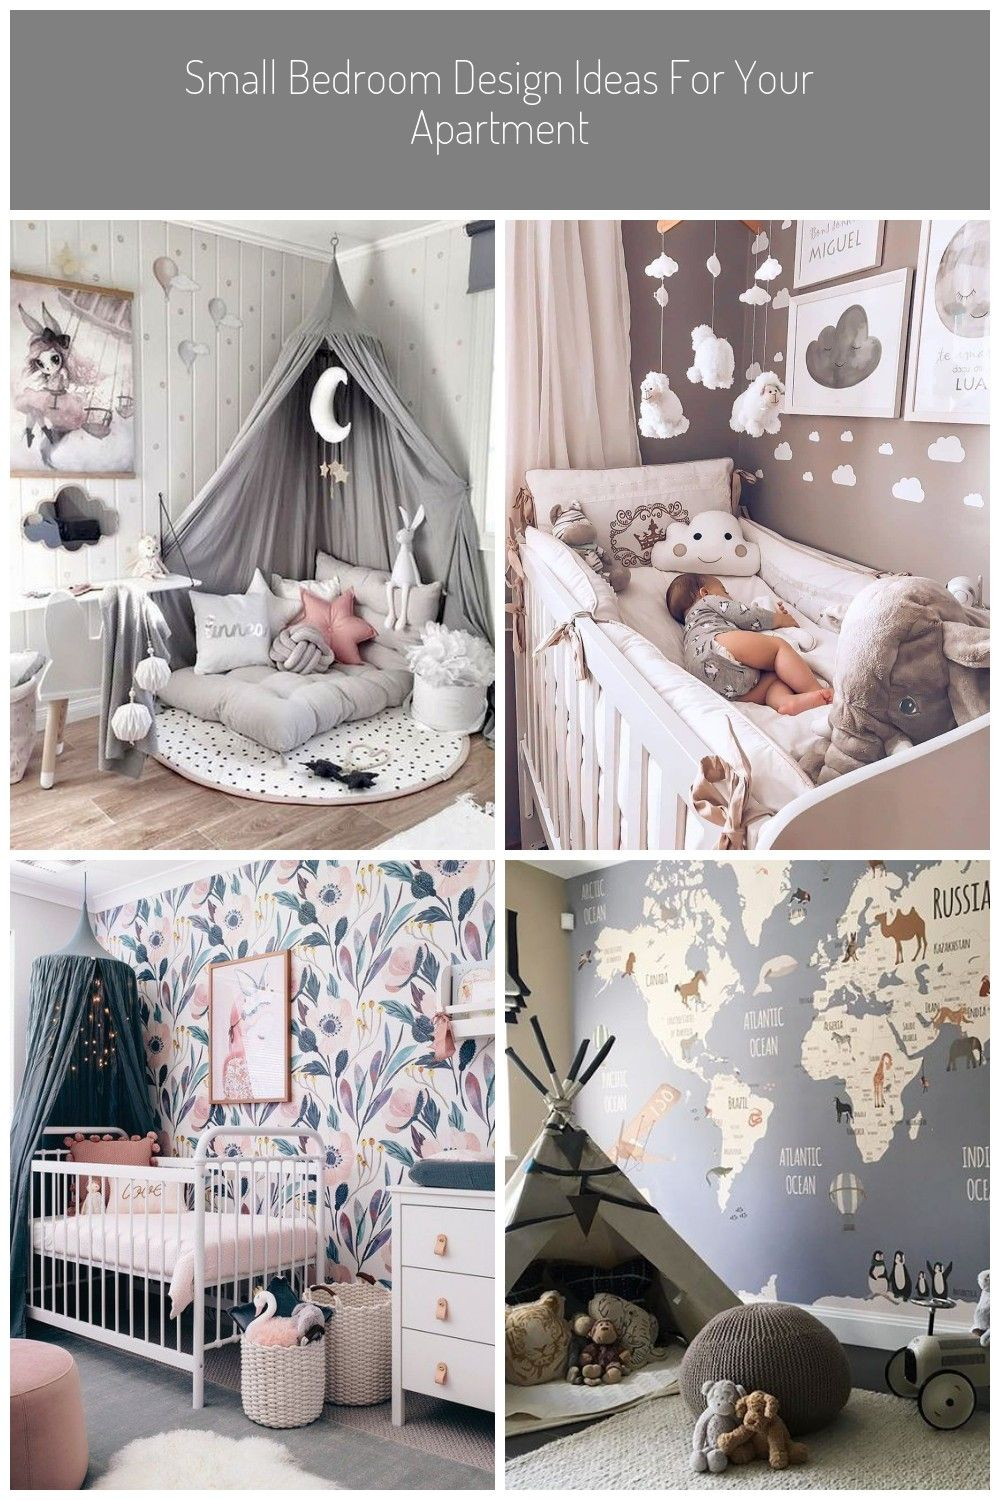 Baby Bedroom Small Bedroom Design Ideas For Your Apartment Homestya Schlafzimmer Design Kleines Schlafzimmer Baby Schlafzimmer